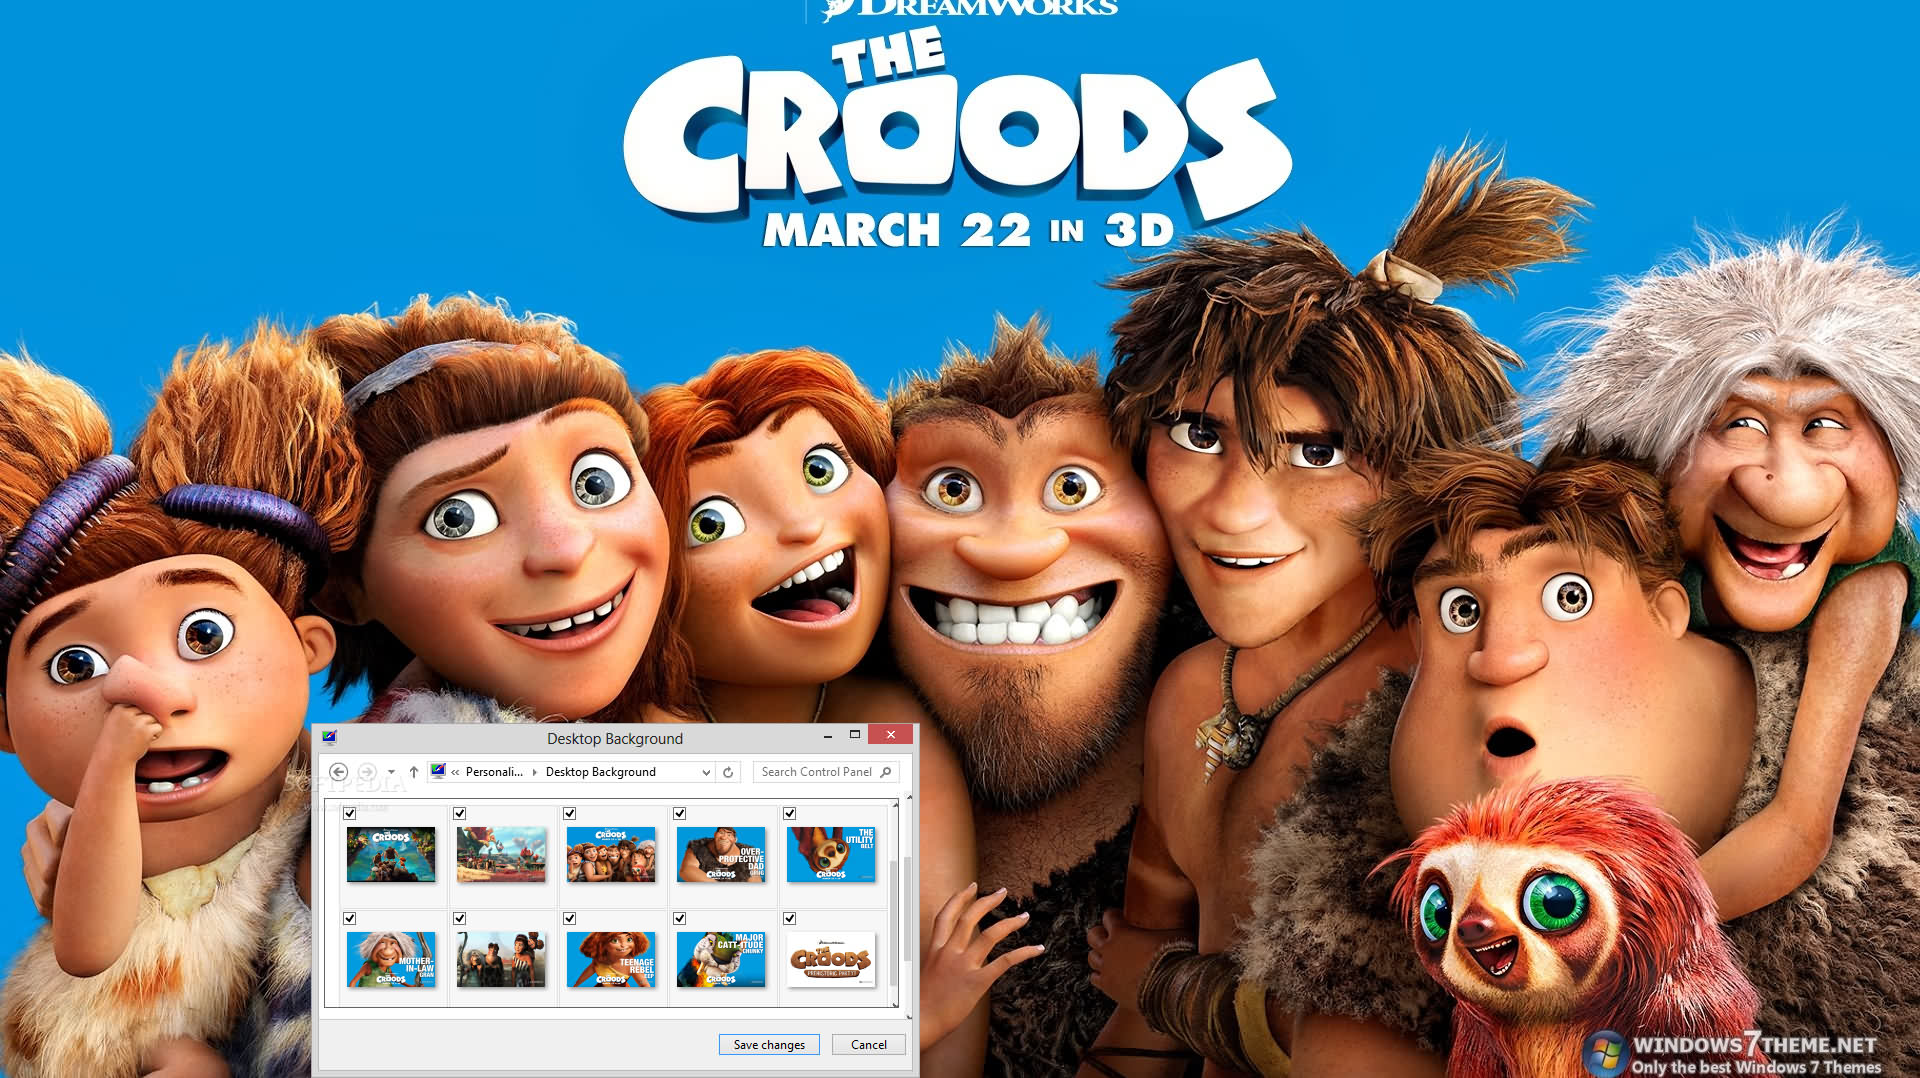 download the croods windows 7 theme 1.00